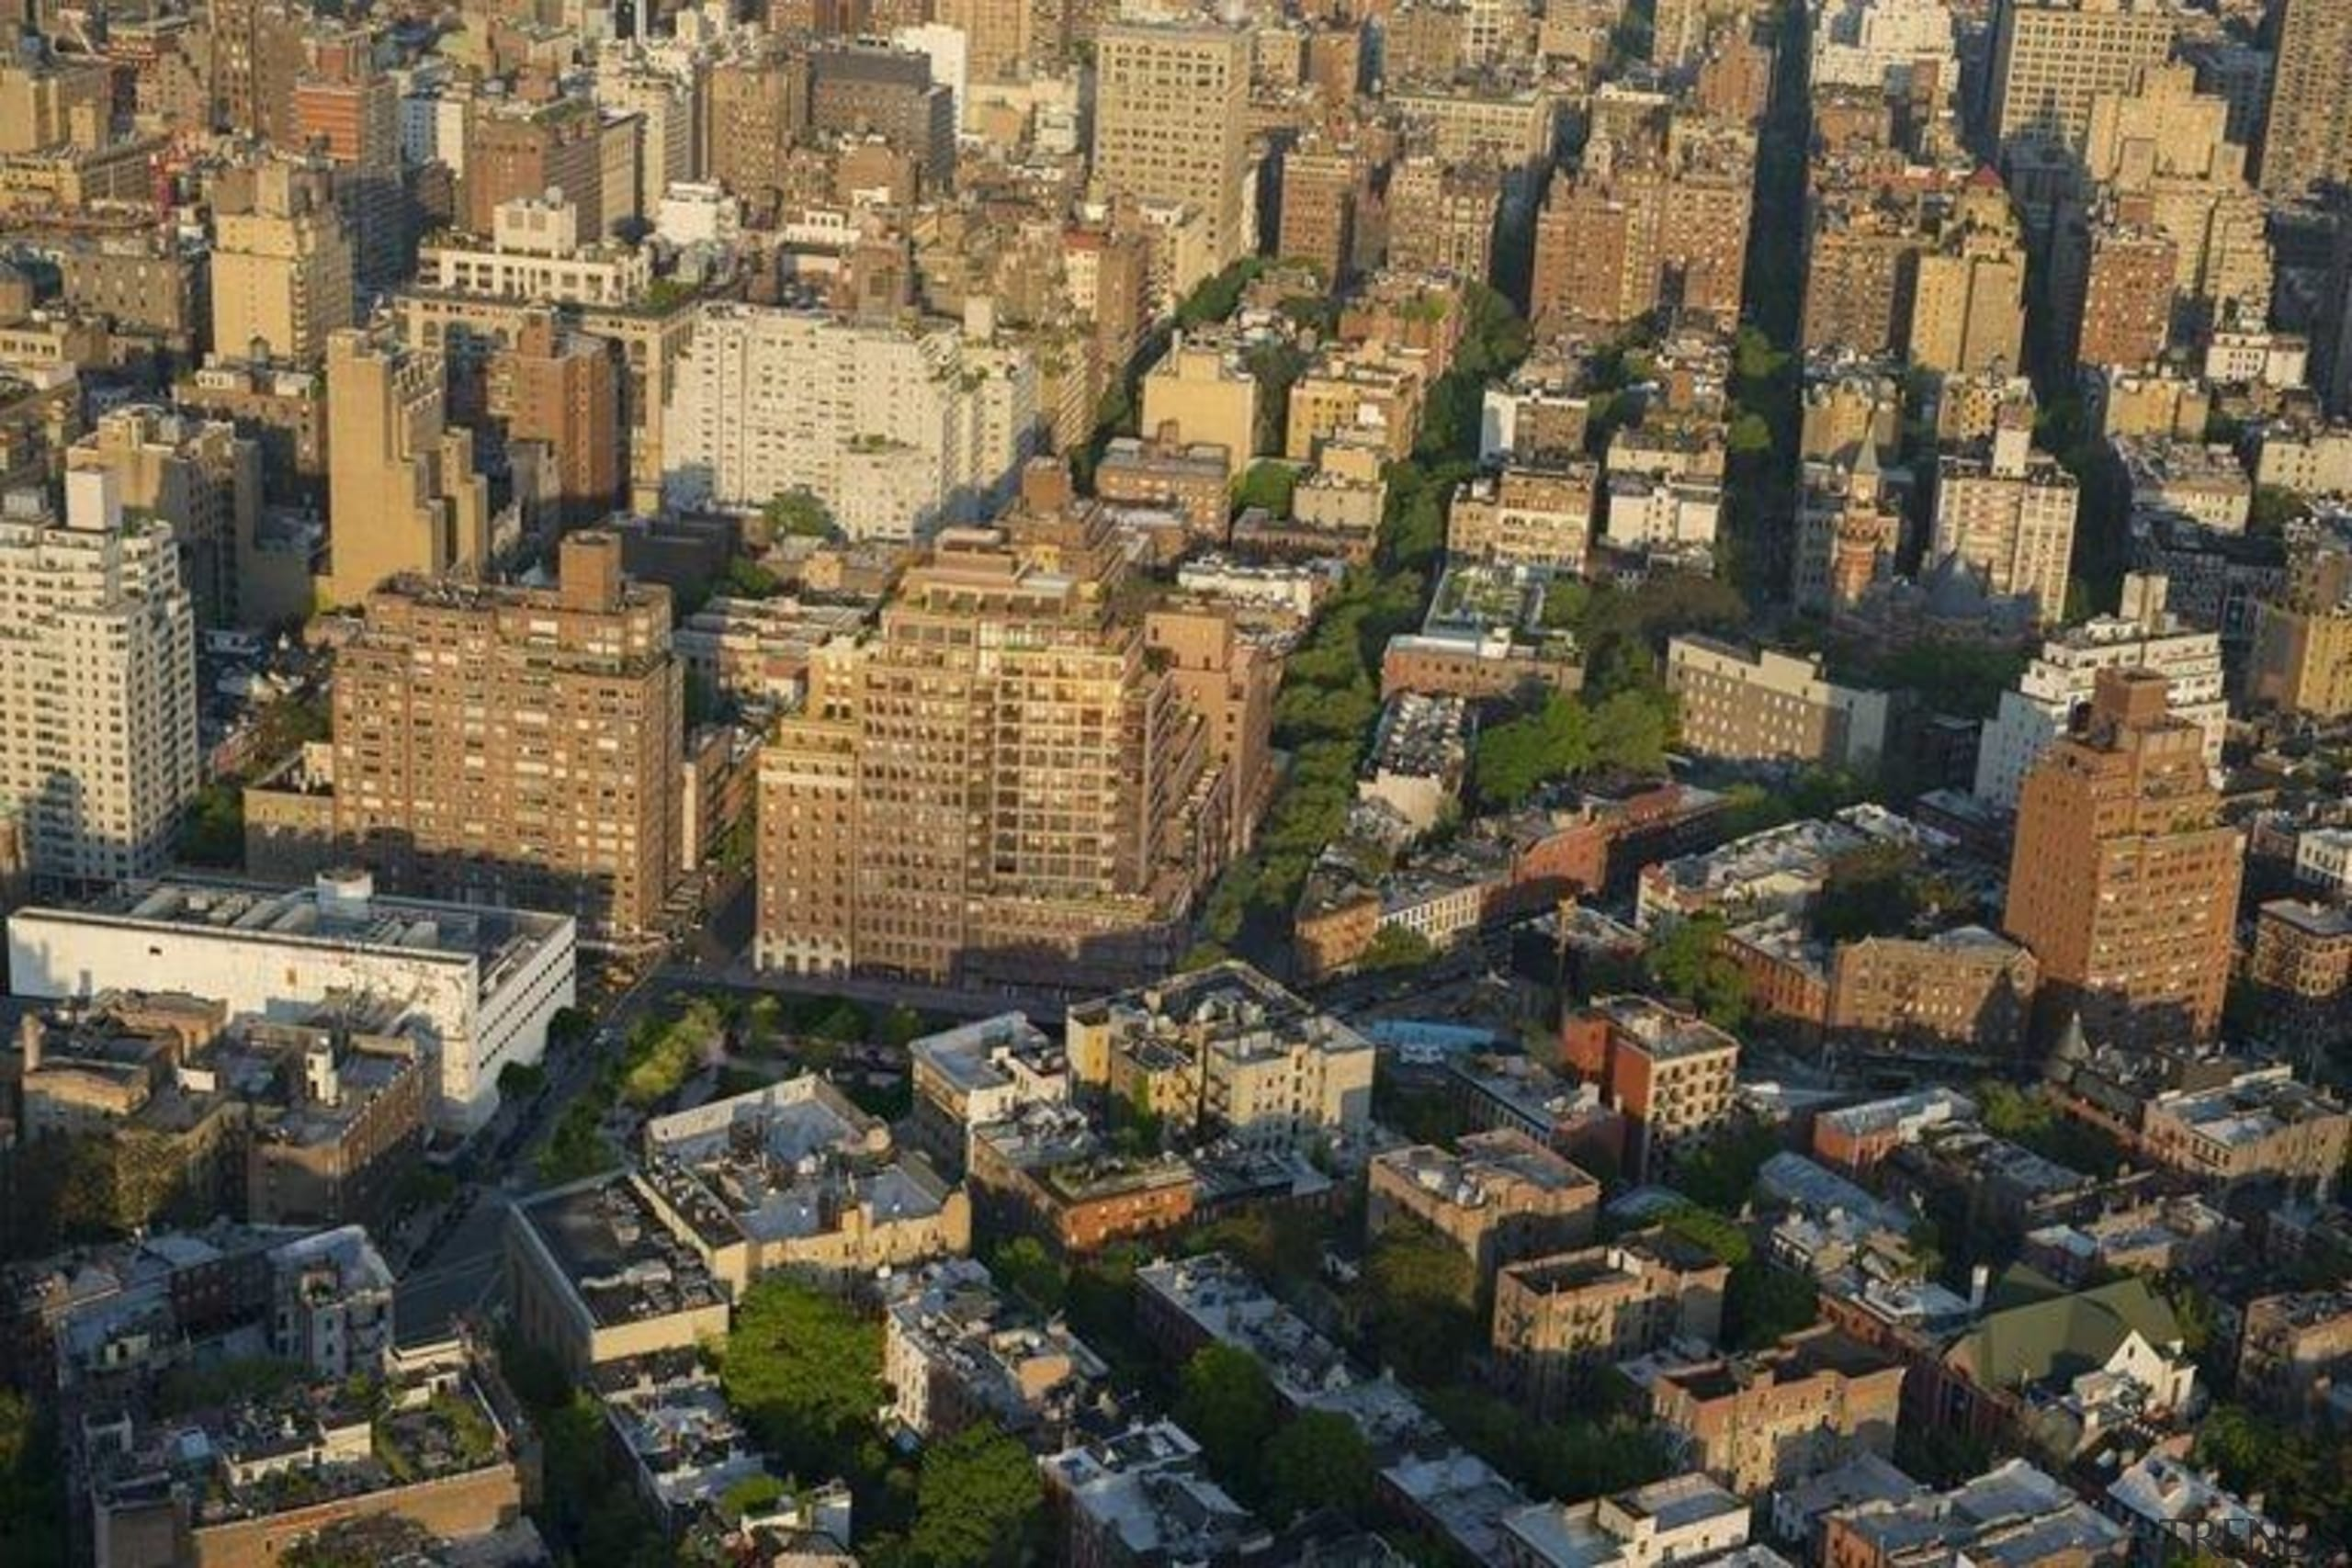 Jon Bon Jovi's new apartment in NYC – aerial photography, bird's eye view, city, cityscape, daytime, historic site, landmark, metropolis, metropolitan area, neighbourhood, residential area, sky, skyline, suburb, tower block, town, urban area, brown, black